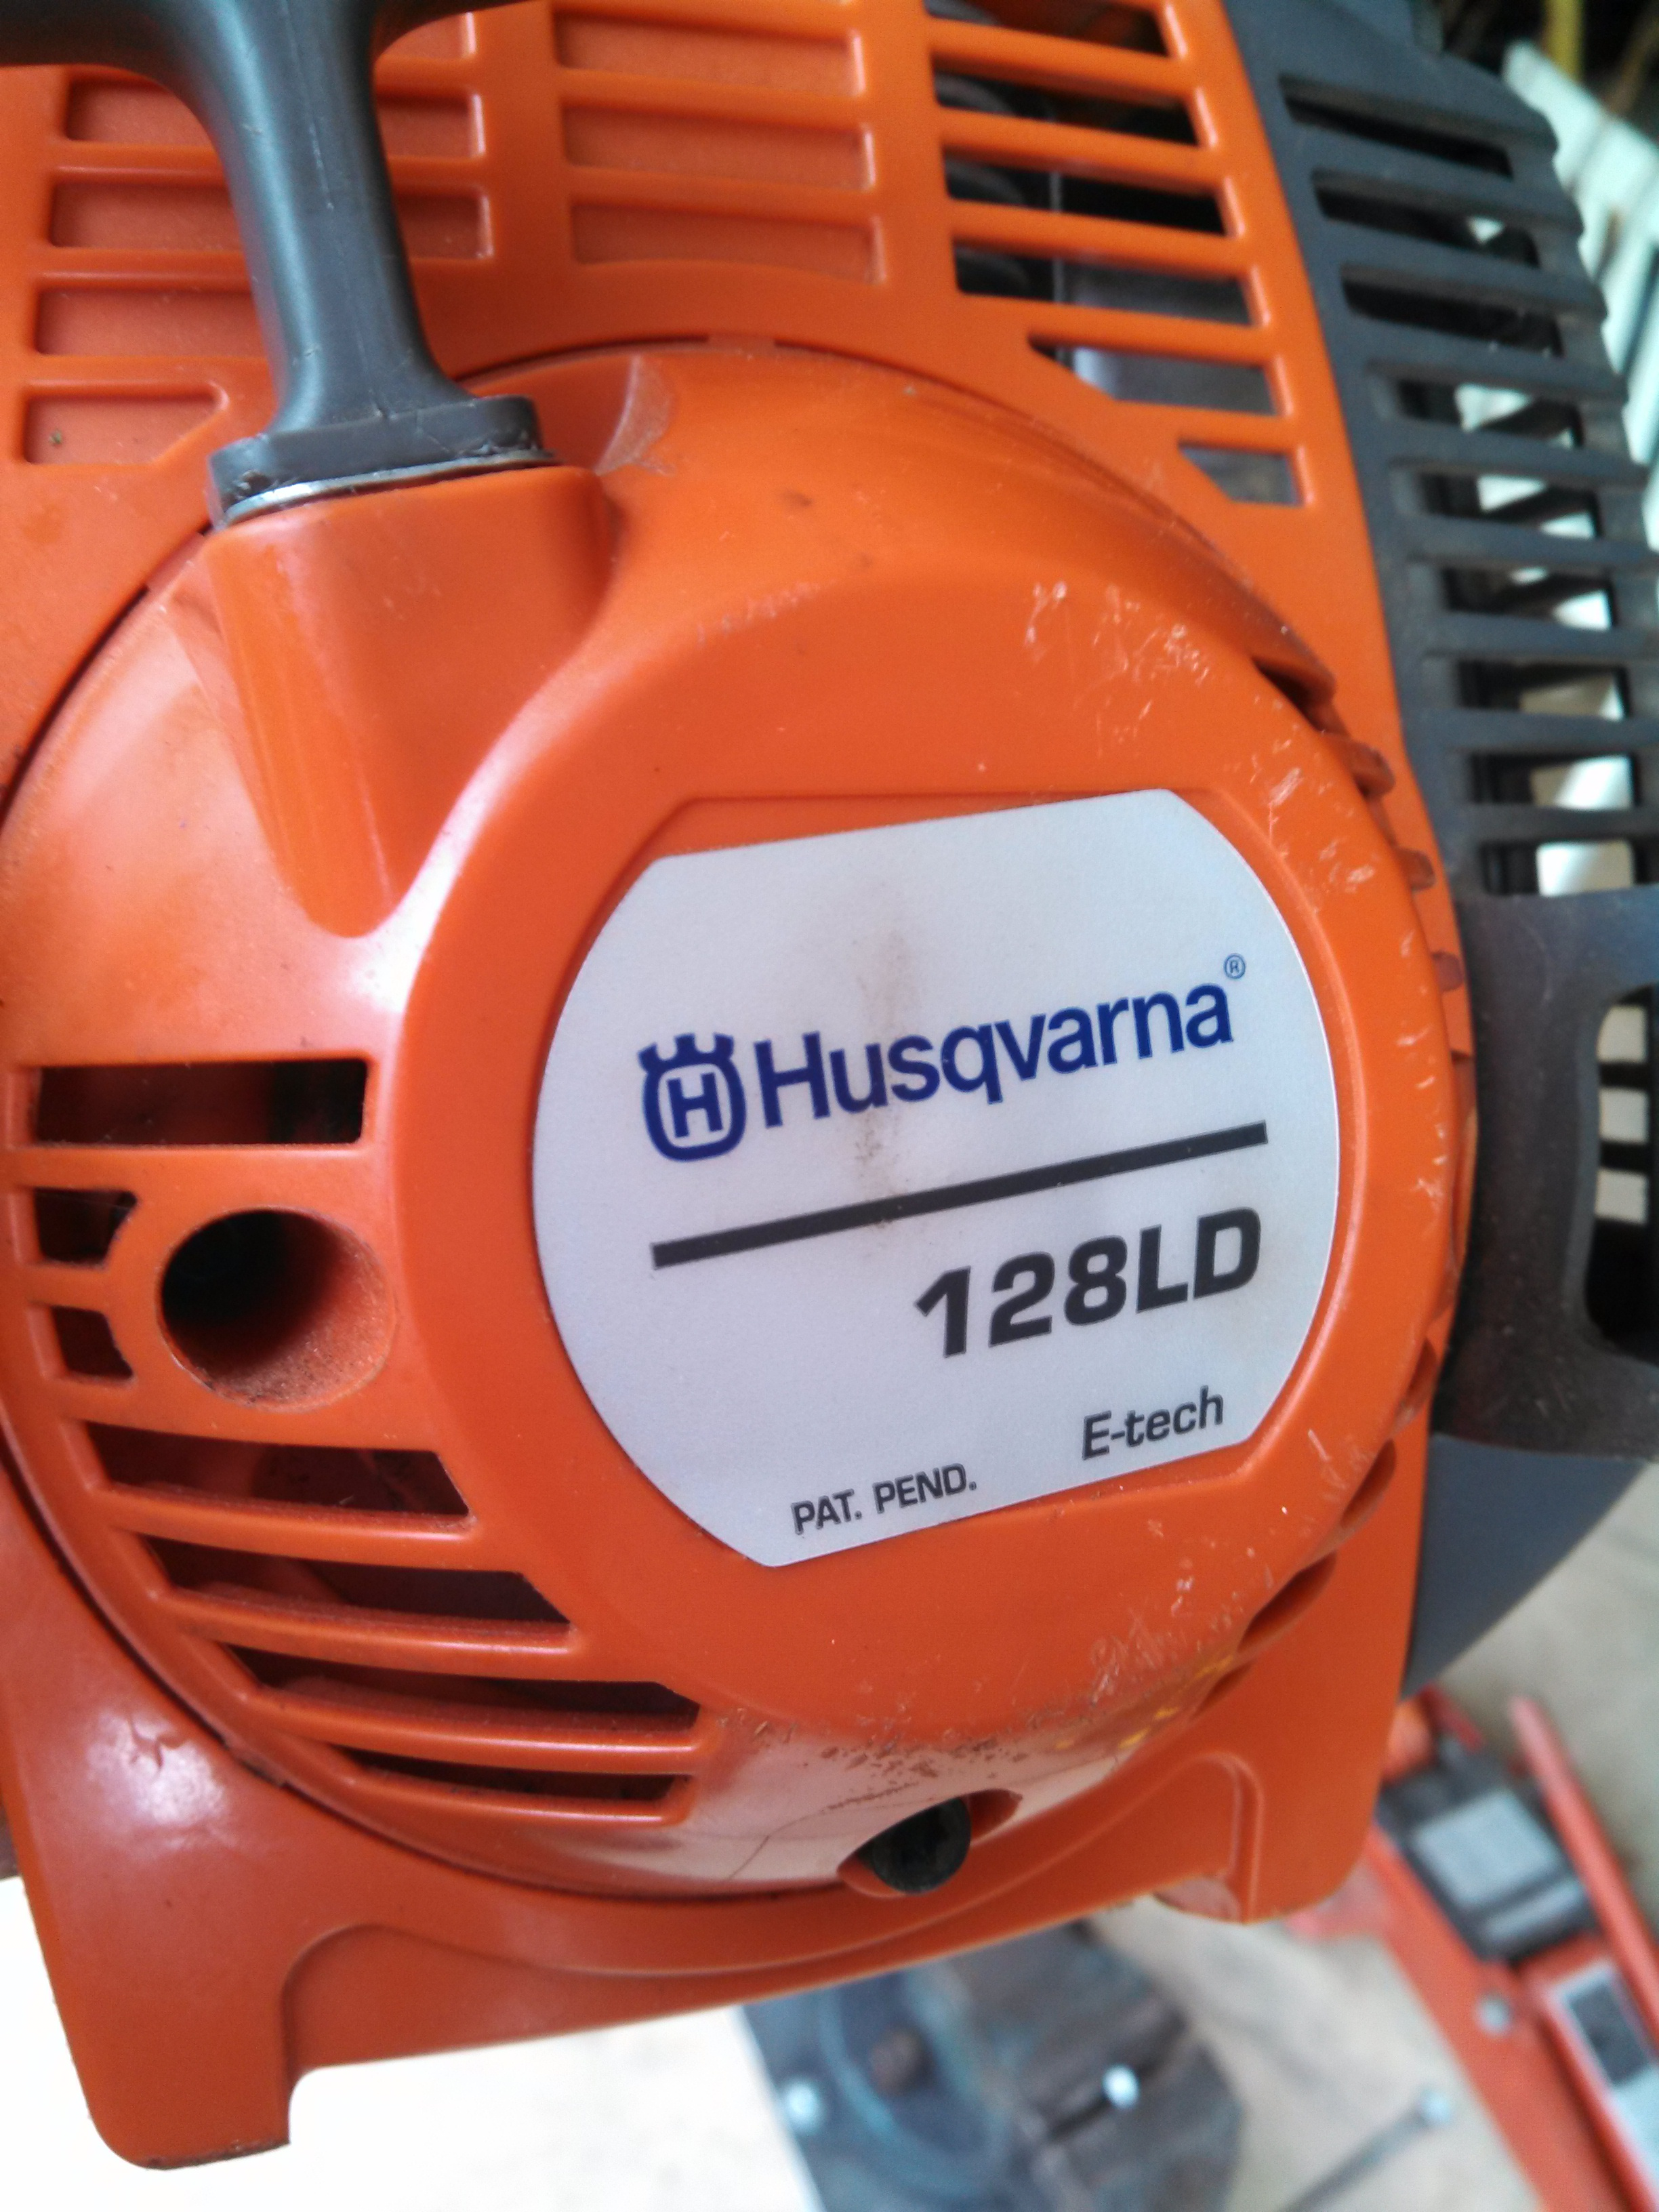 I purchased a Husqvarna 128LD from Lowes several      String